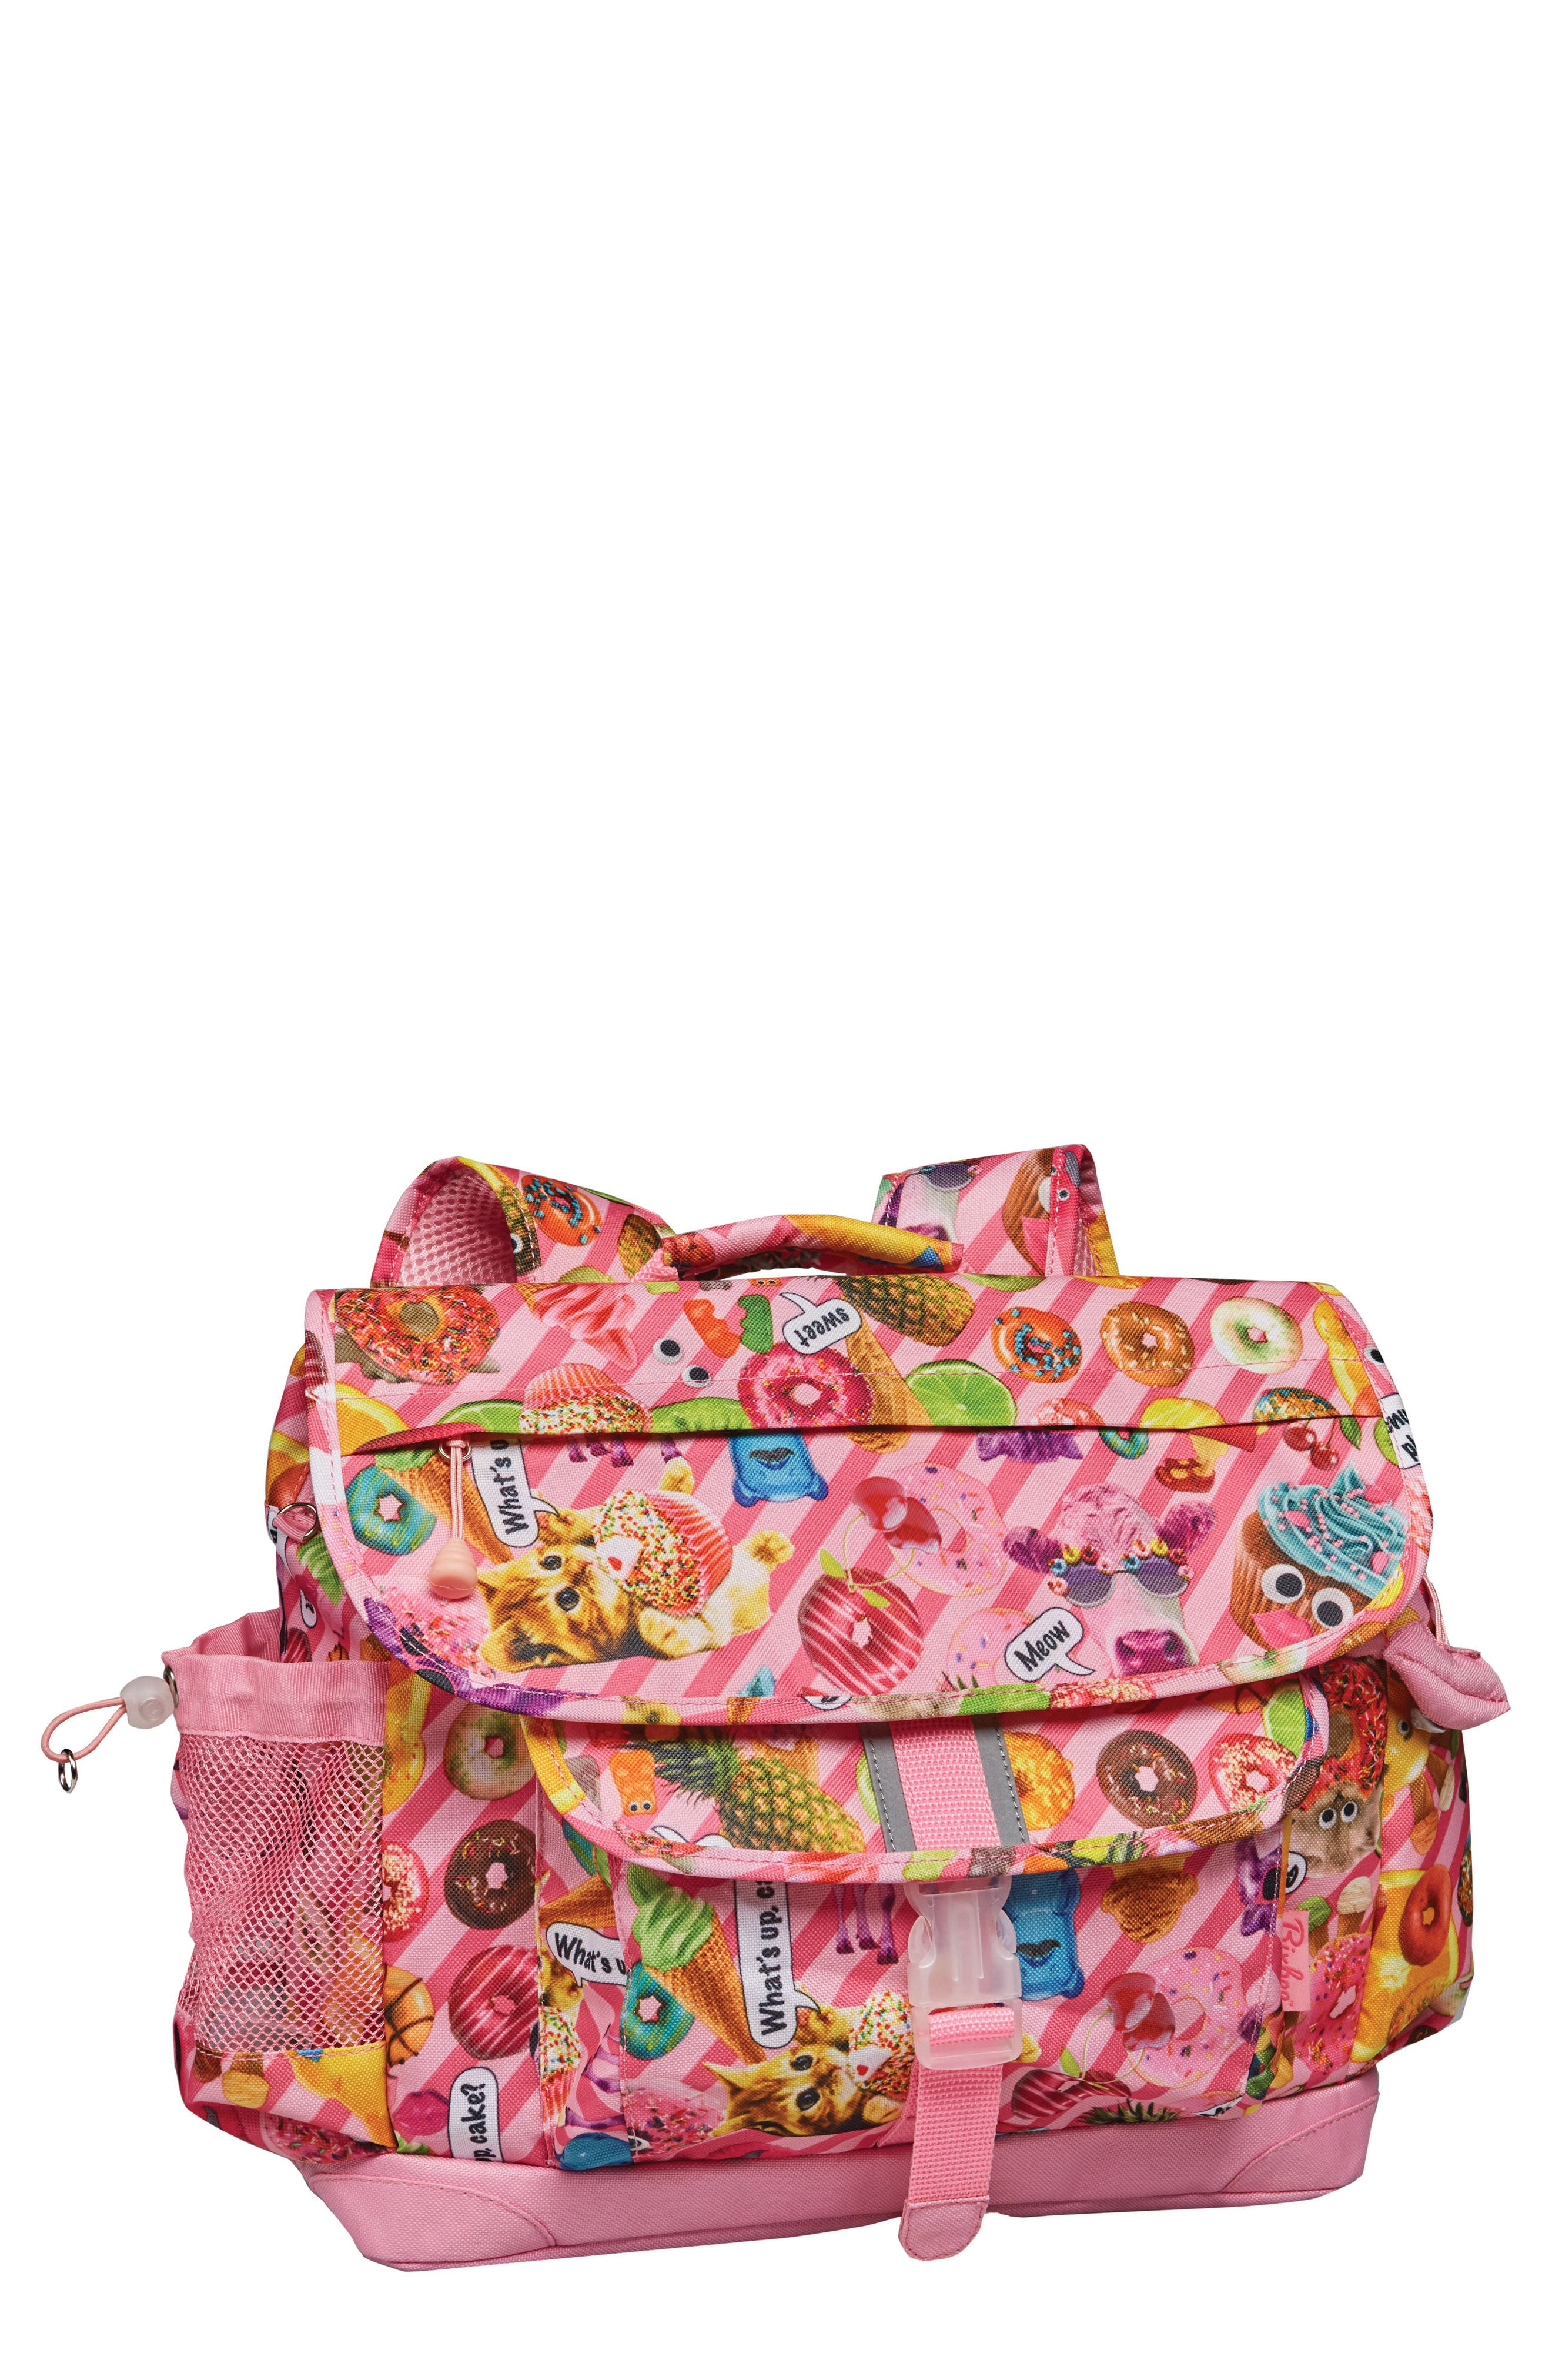 Funtastical Backpack,                             Main thumbnail 1, color,                             Pink